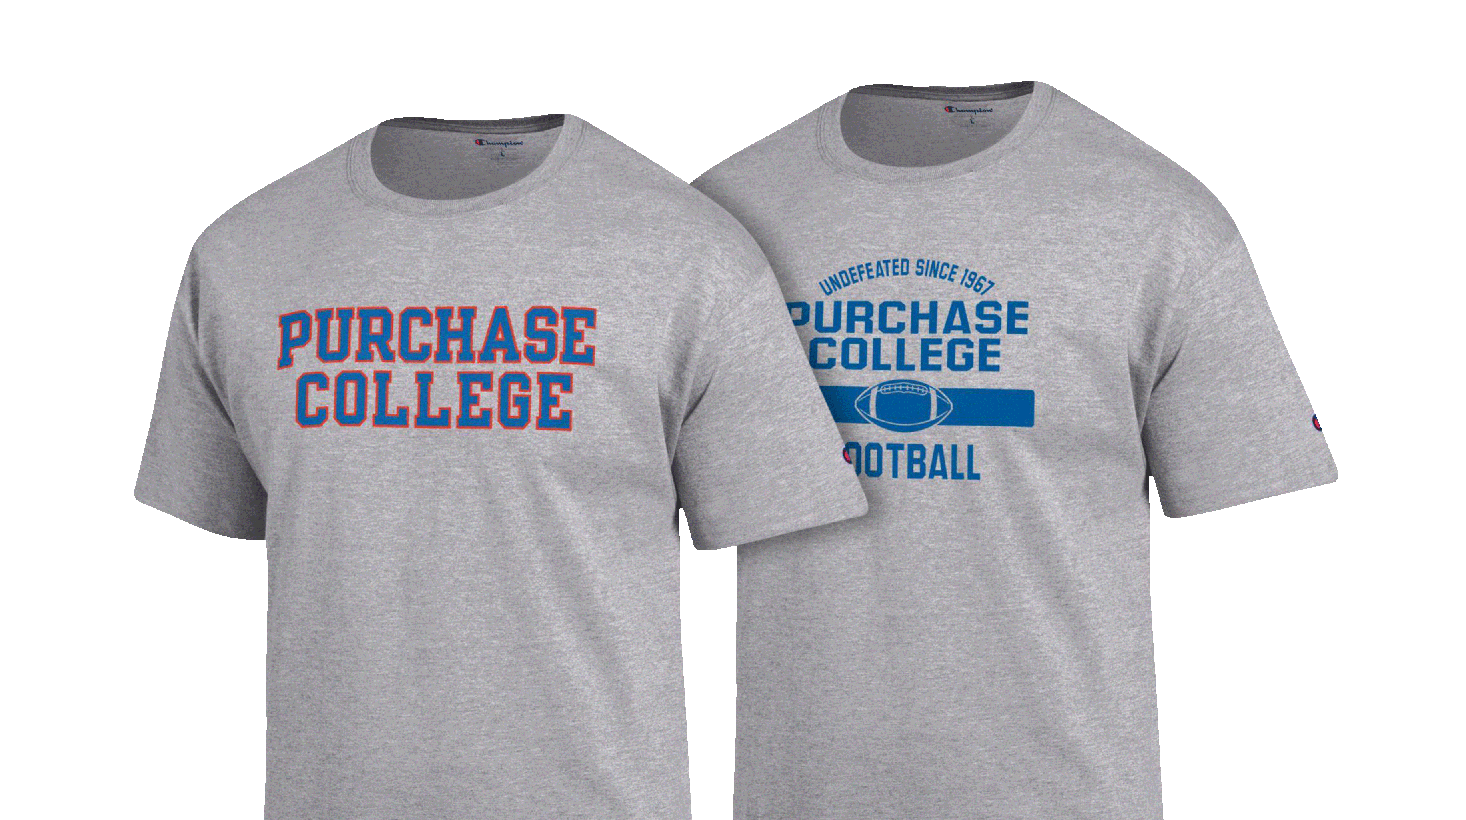 df5f361328f9 Purchase College Campus Store Apparel, Merchandise, & Gifts